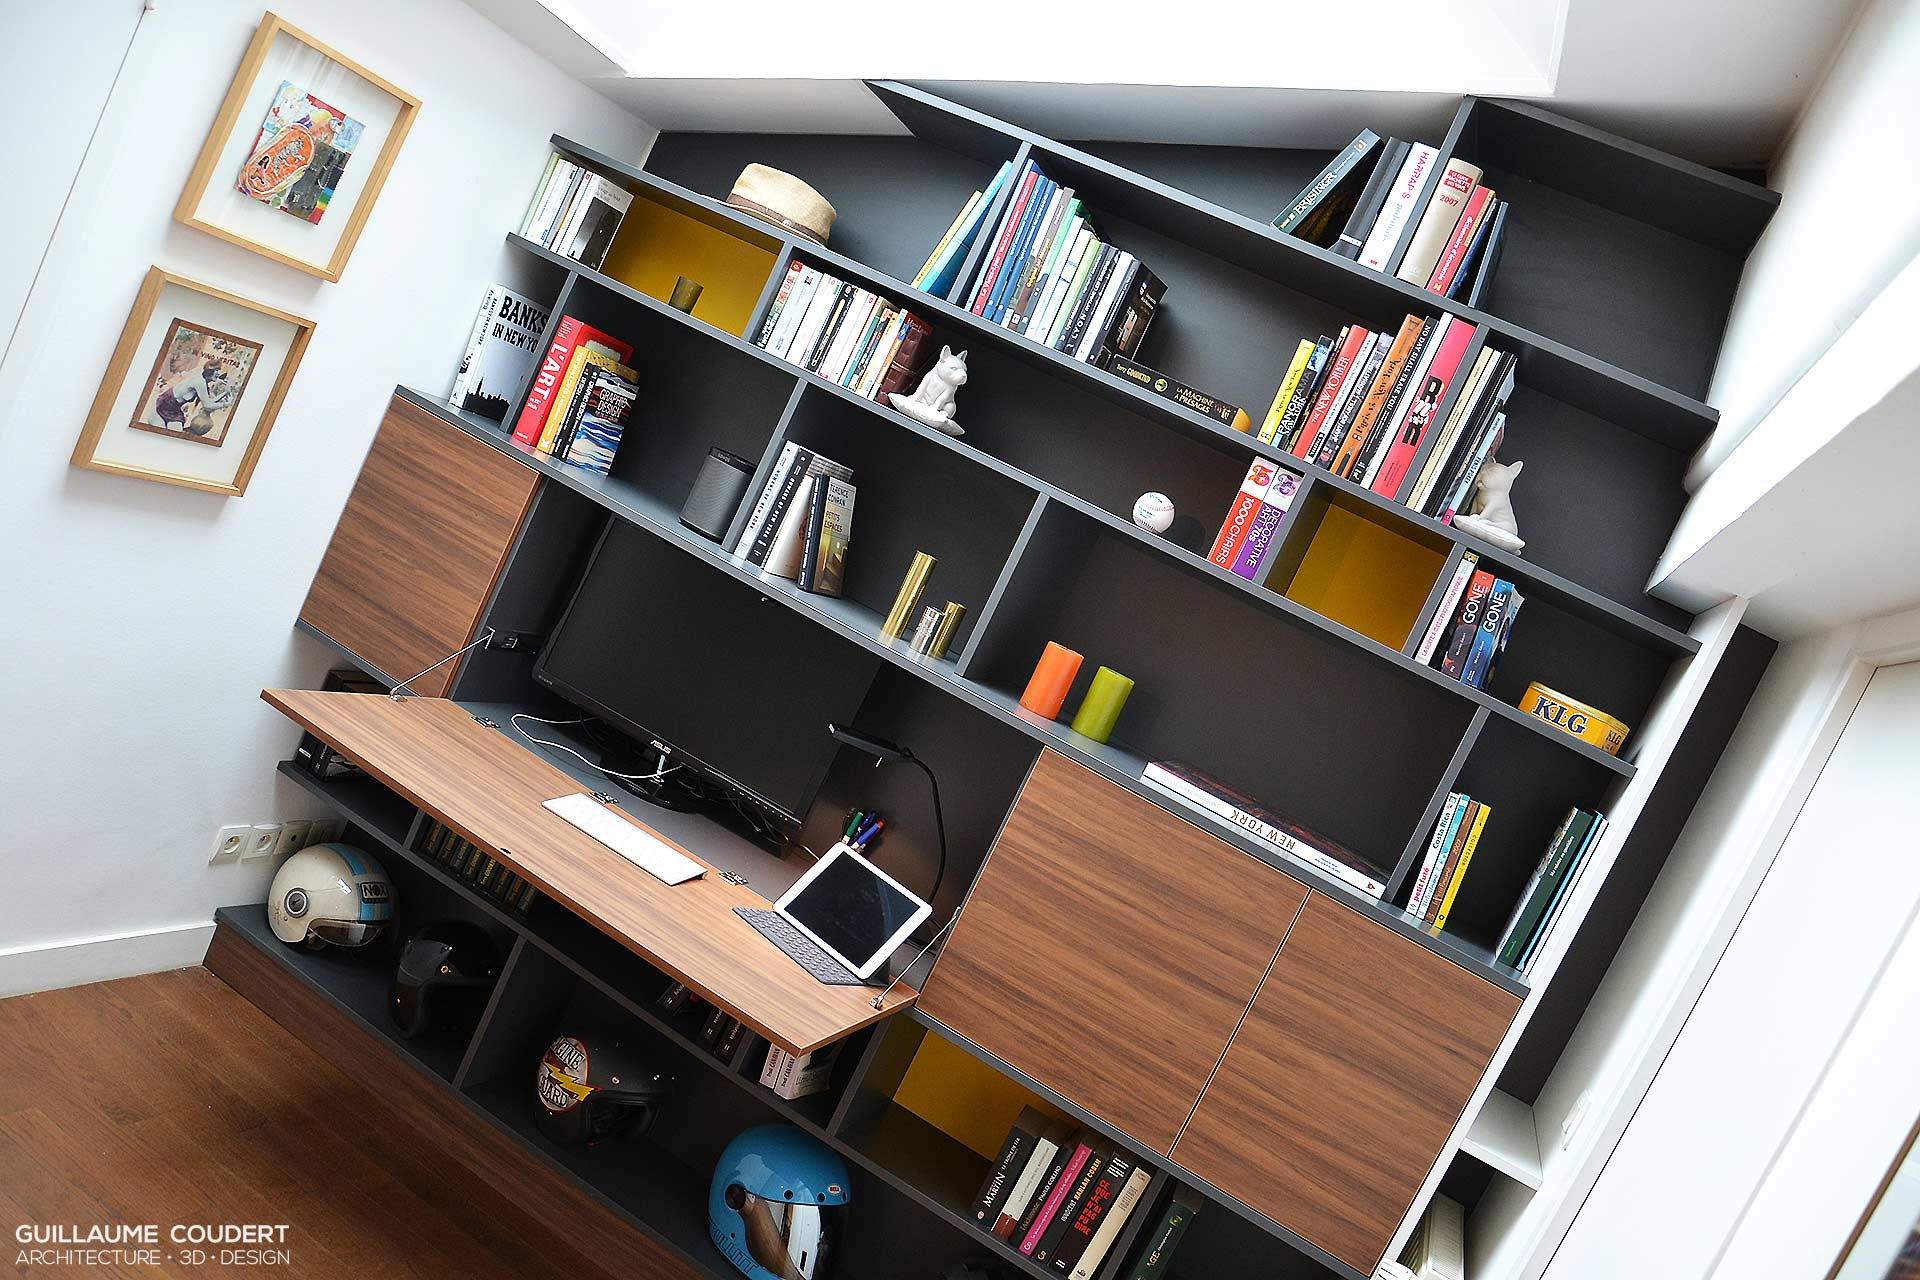 Secretaire Meuble Design Bibliotheque + Secretaire – Guillaume Coudert Architecture